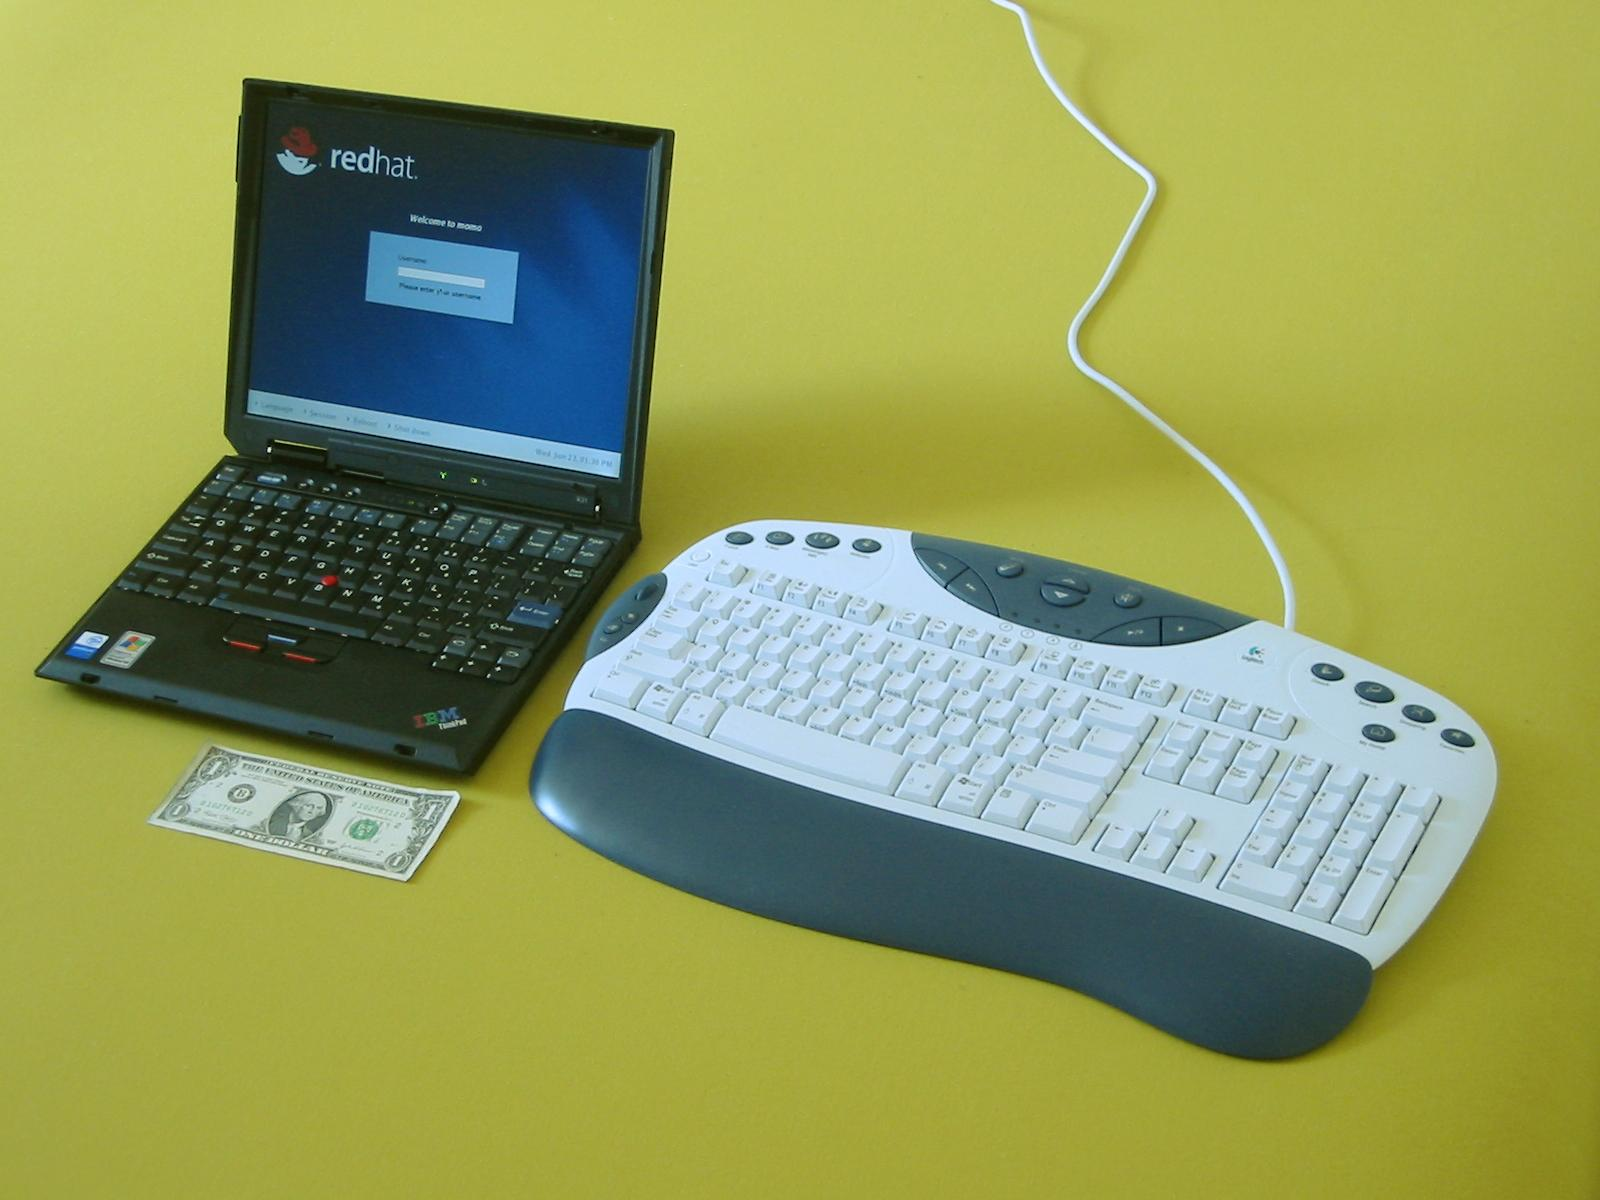 Peter Selinger: Linux on an IBM Thinkpad X31: Images